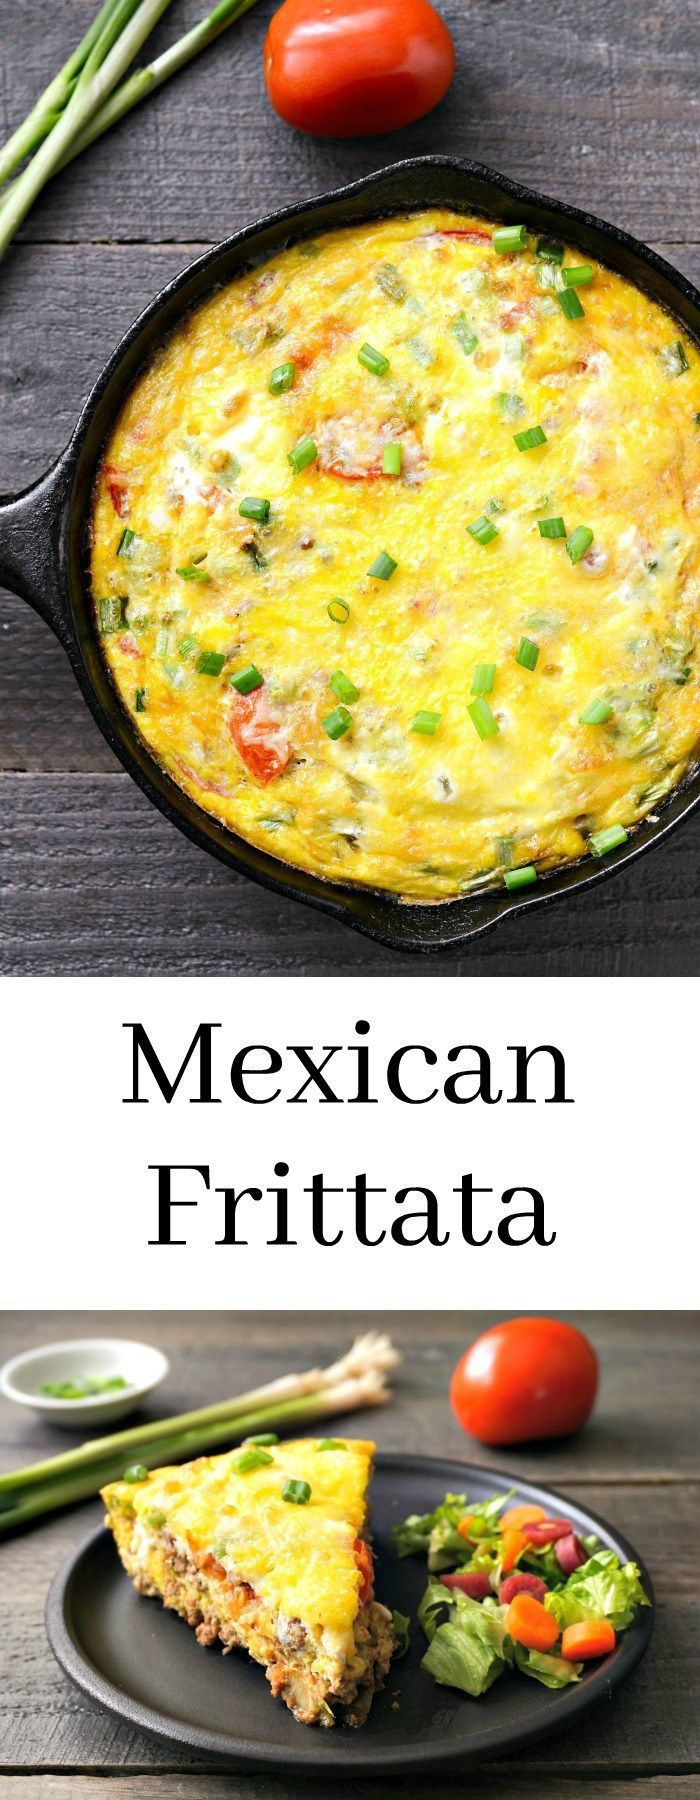 This Mexican frittata recipe is an easy, delicious meal. Try this gluten-free recipe for a healthy dinner or hearty breakfast. Recipe from realfoodrealdeals.com